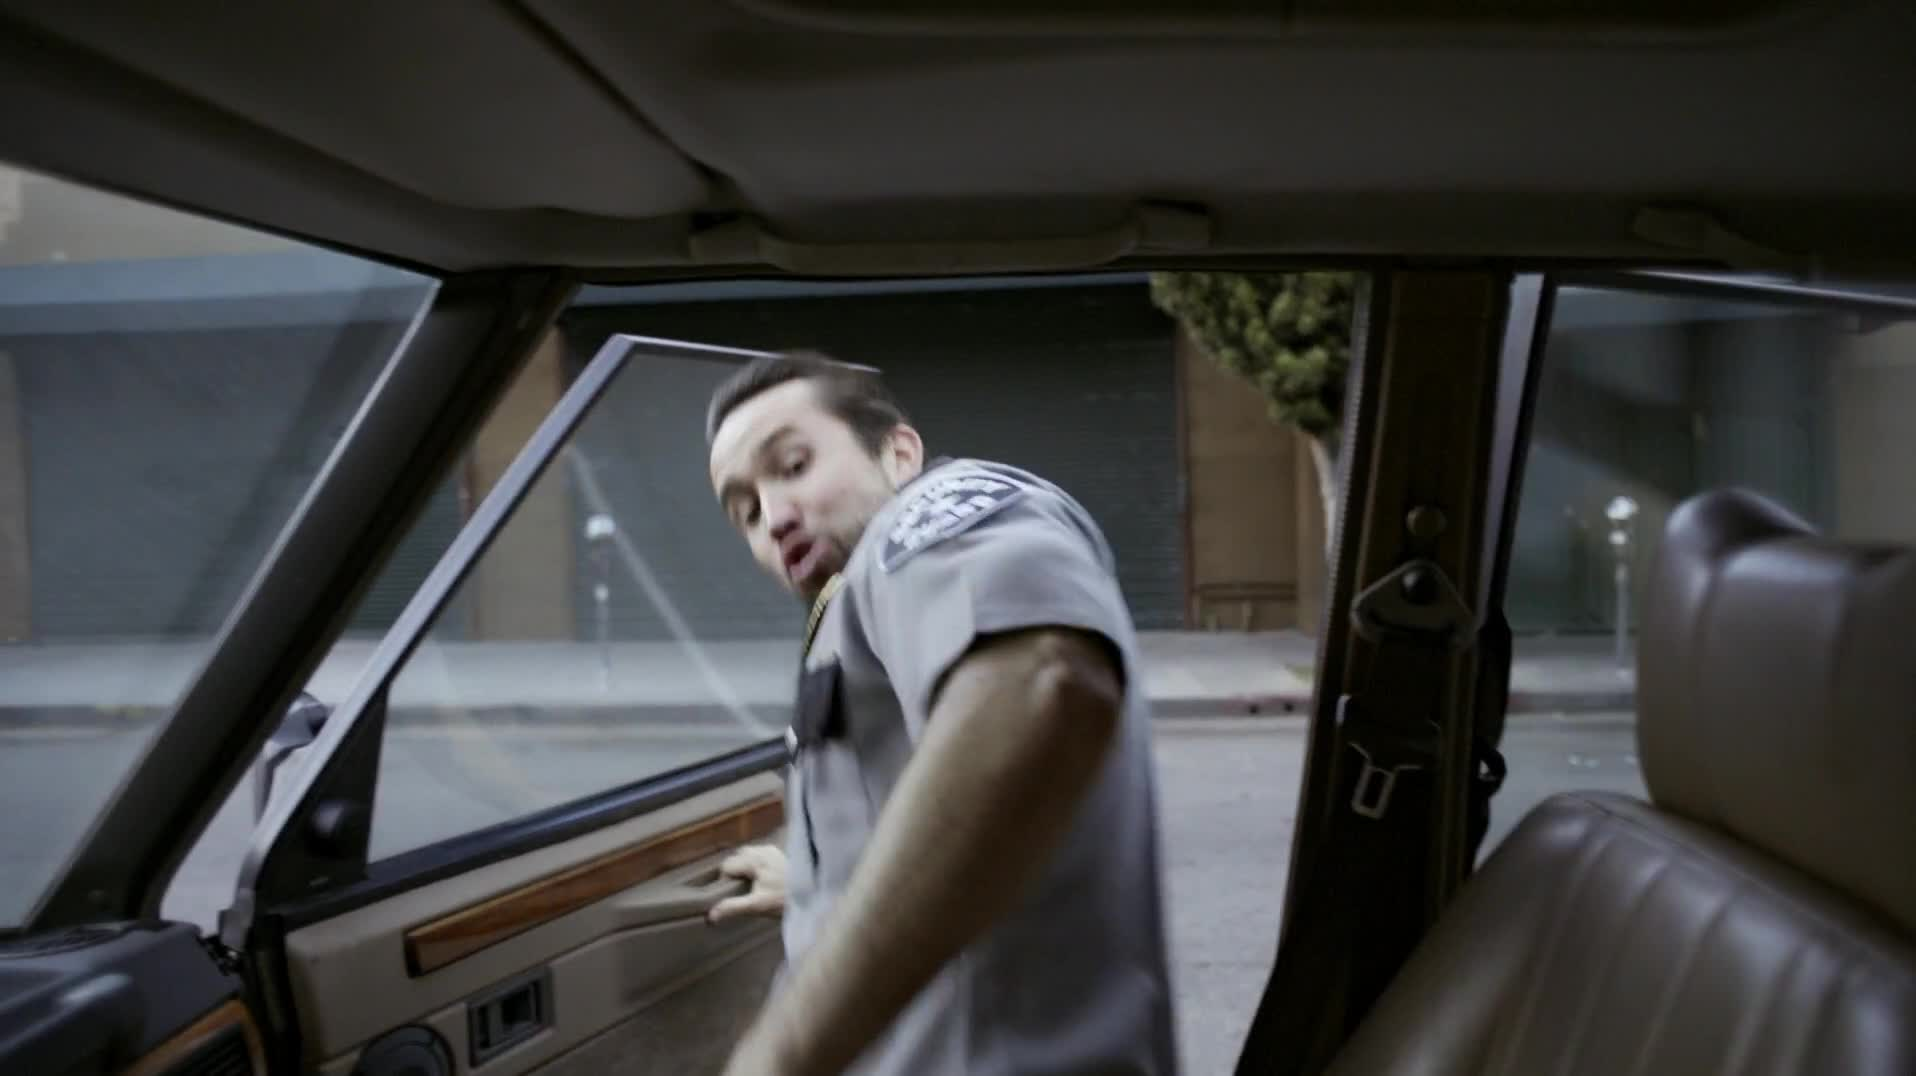 celebs, rob mcelhenney, Its.Always.Sunny.in.Philadelphia.S11E06.Being.Frank.1080p.WEB-DL.AAC2.0.H.264-Oosh GIFs